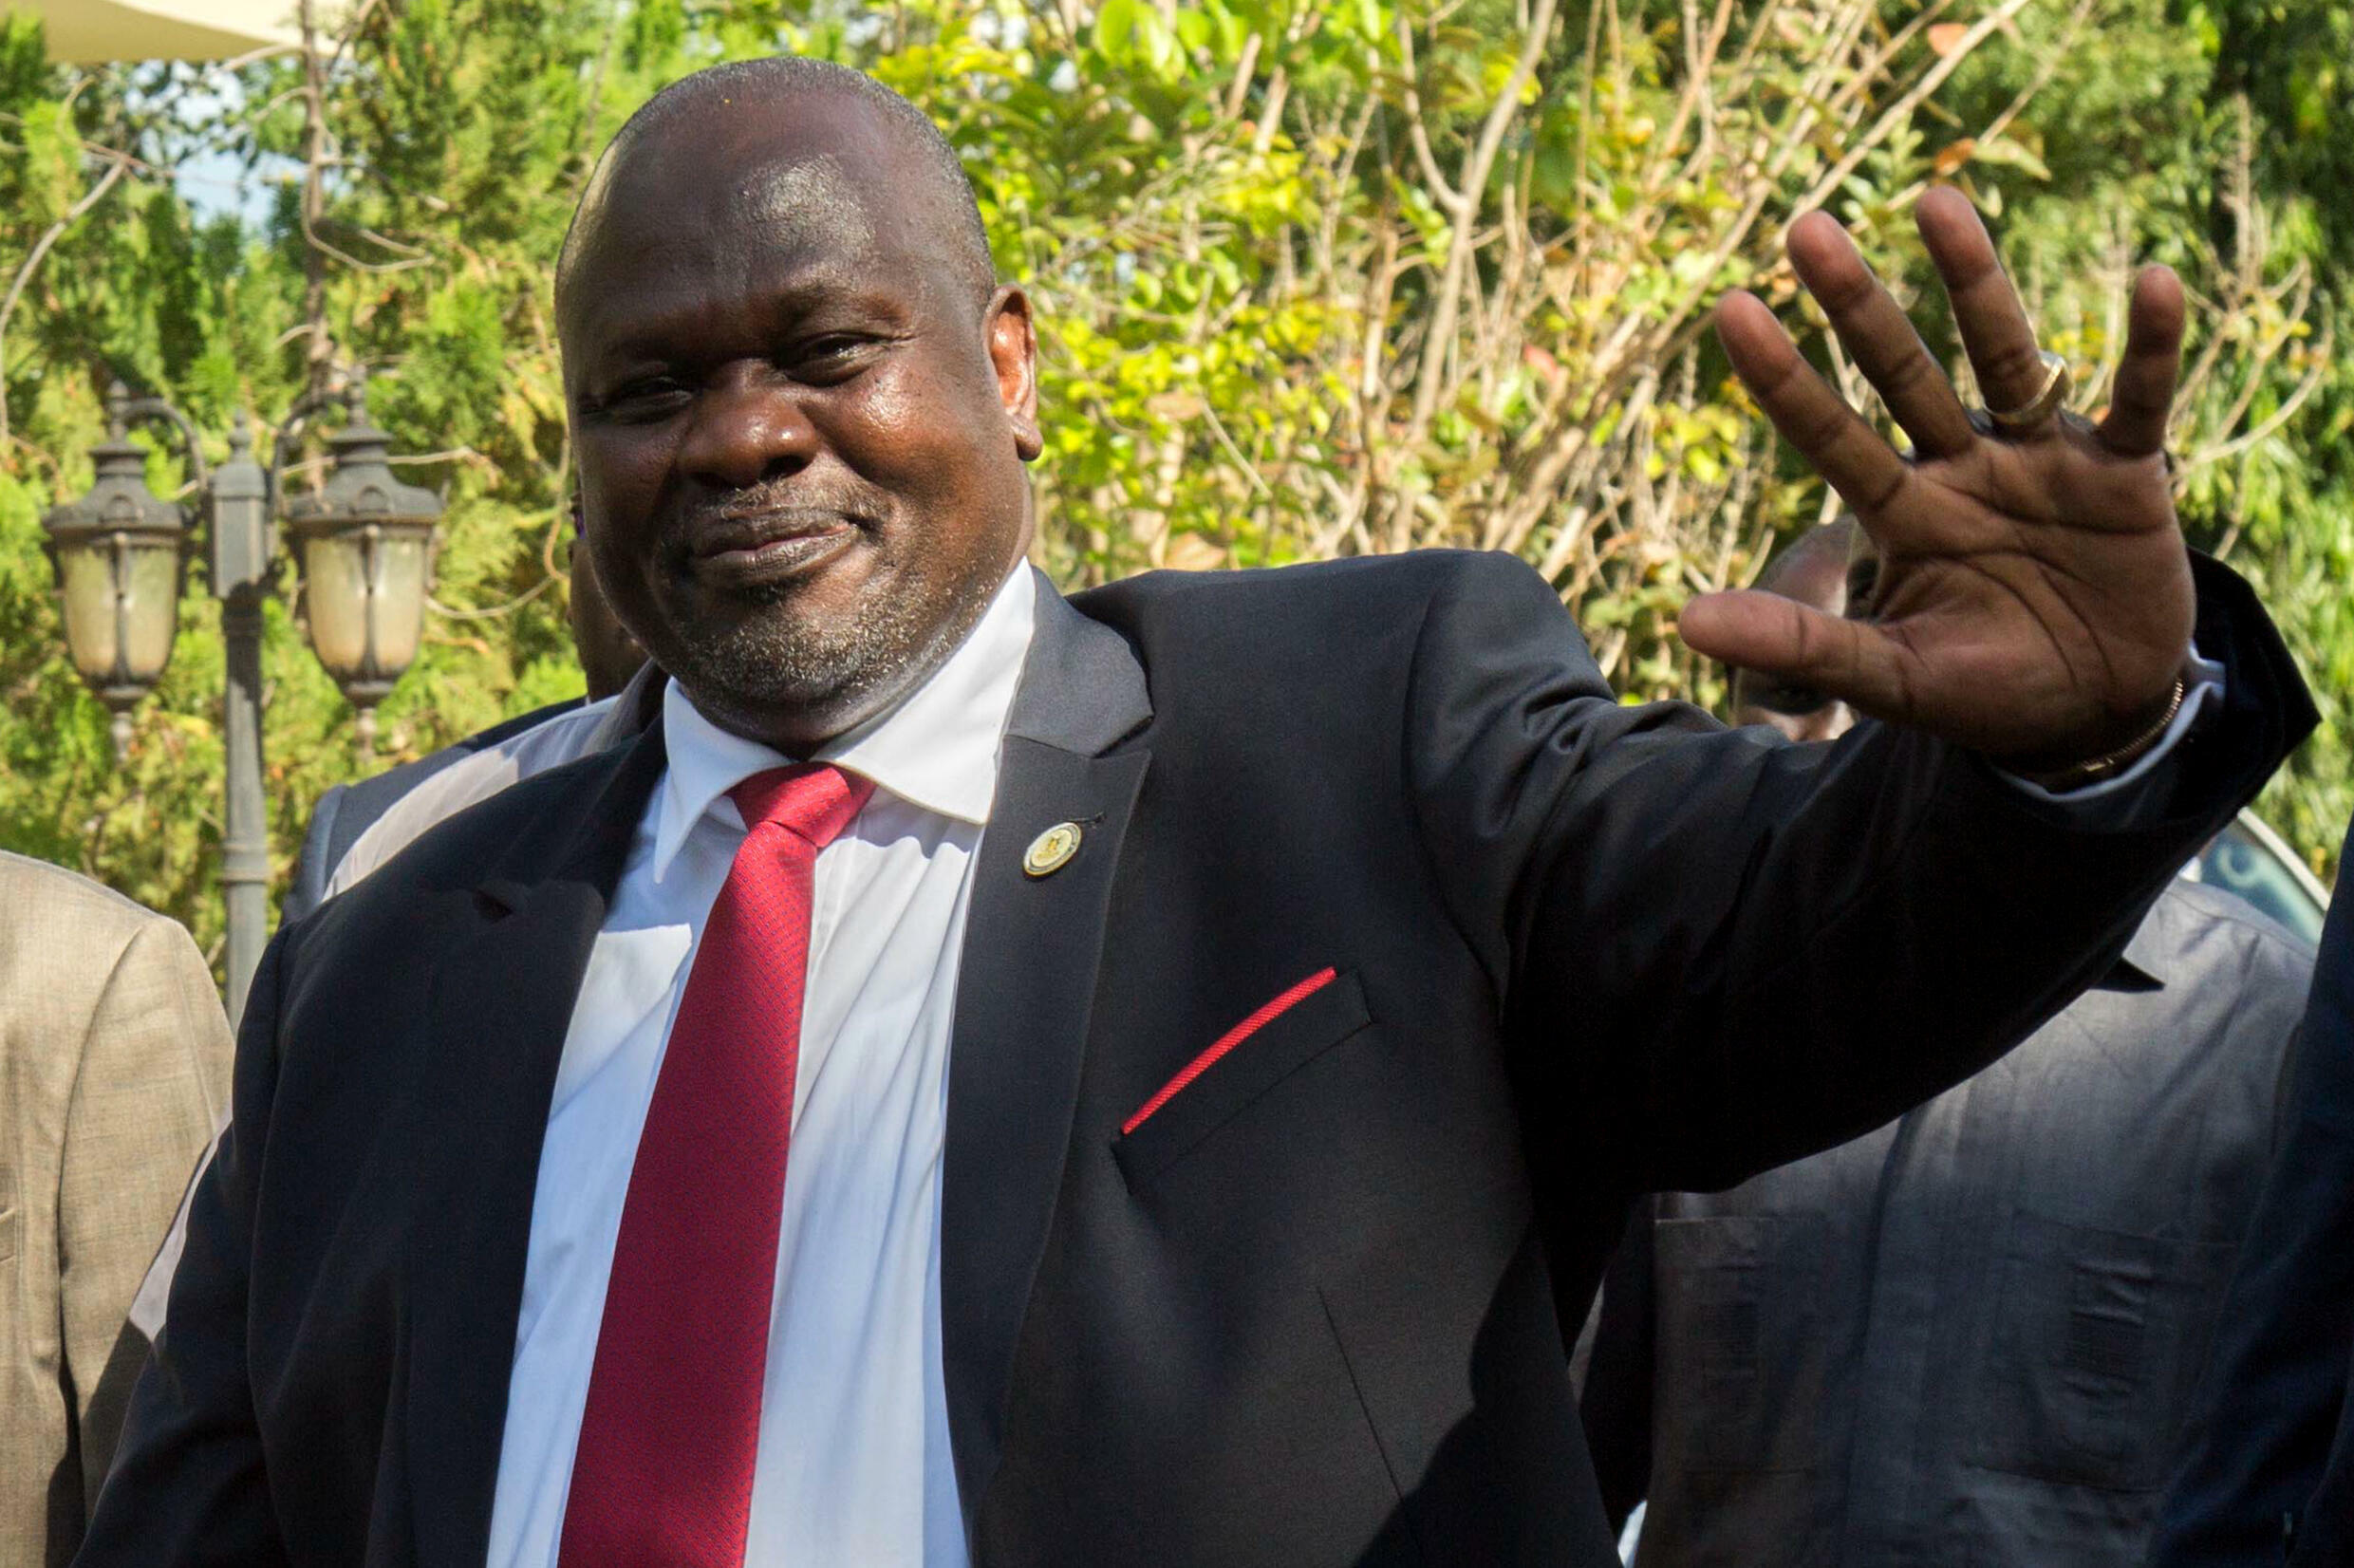 Riek Machar is a pivotal figure in South Sudan's bloody road to independence and subsequent civil war